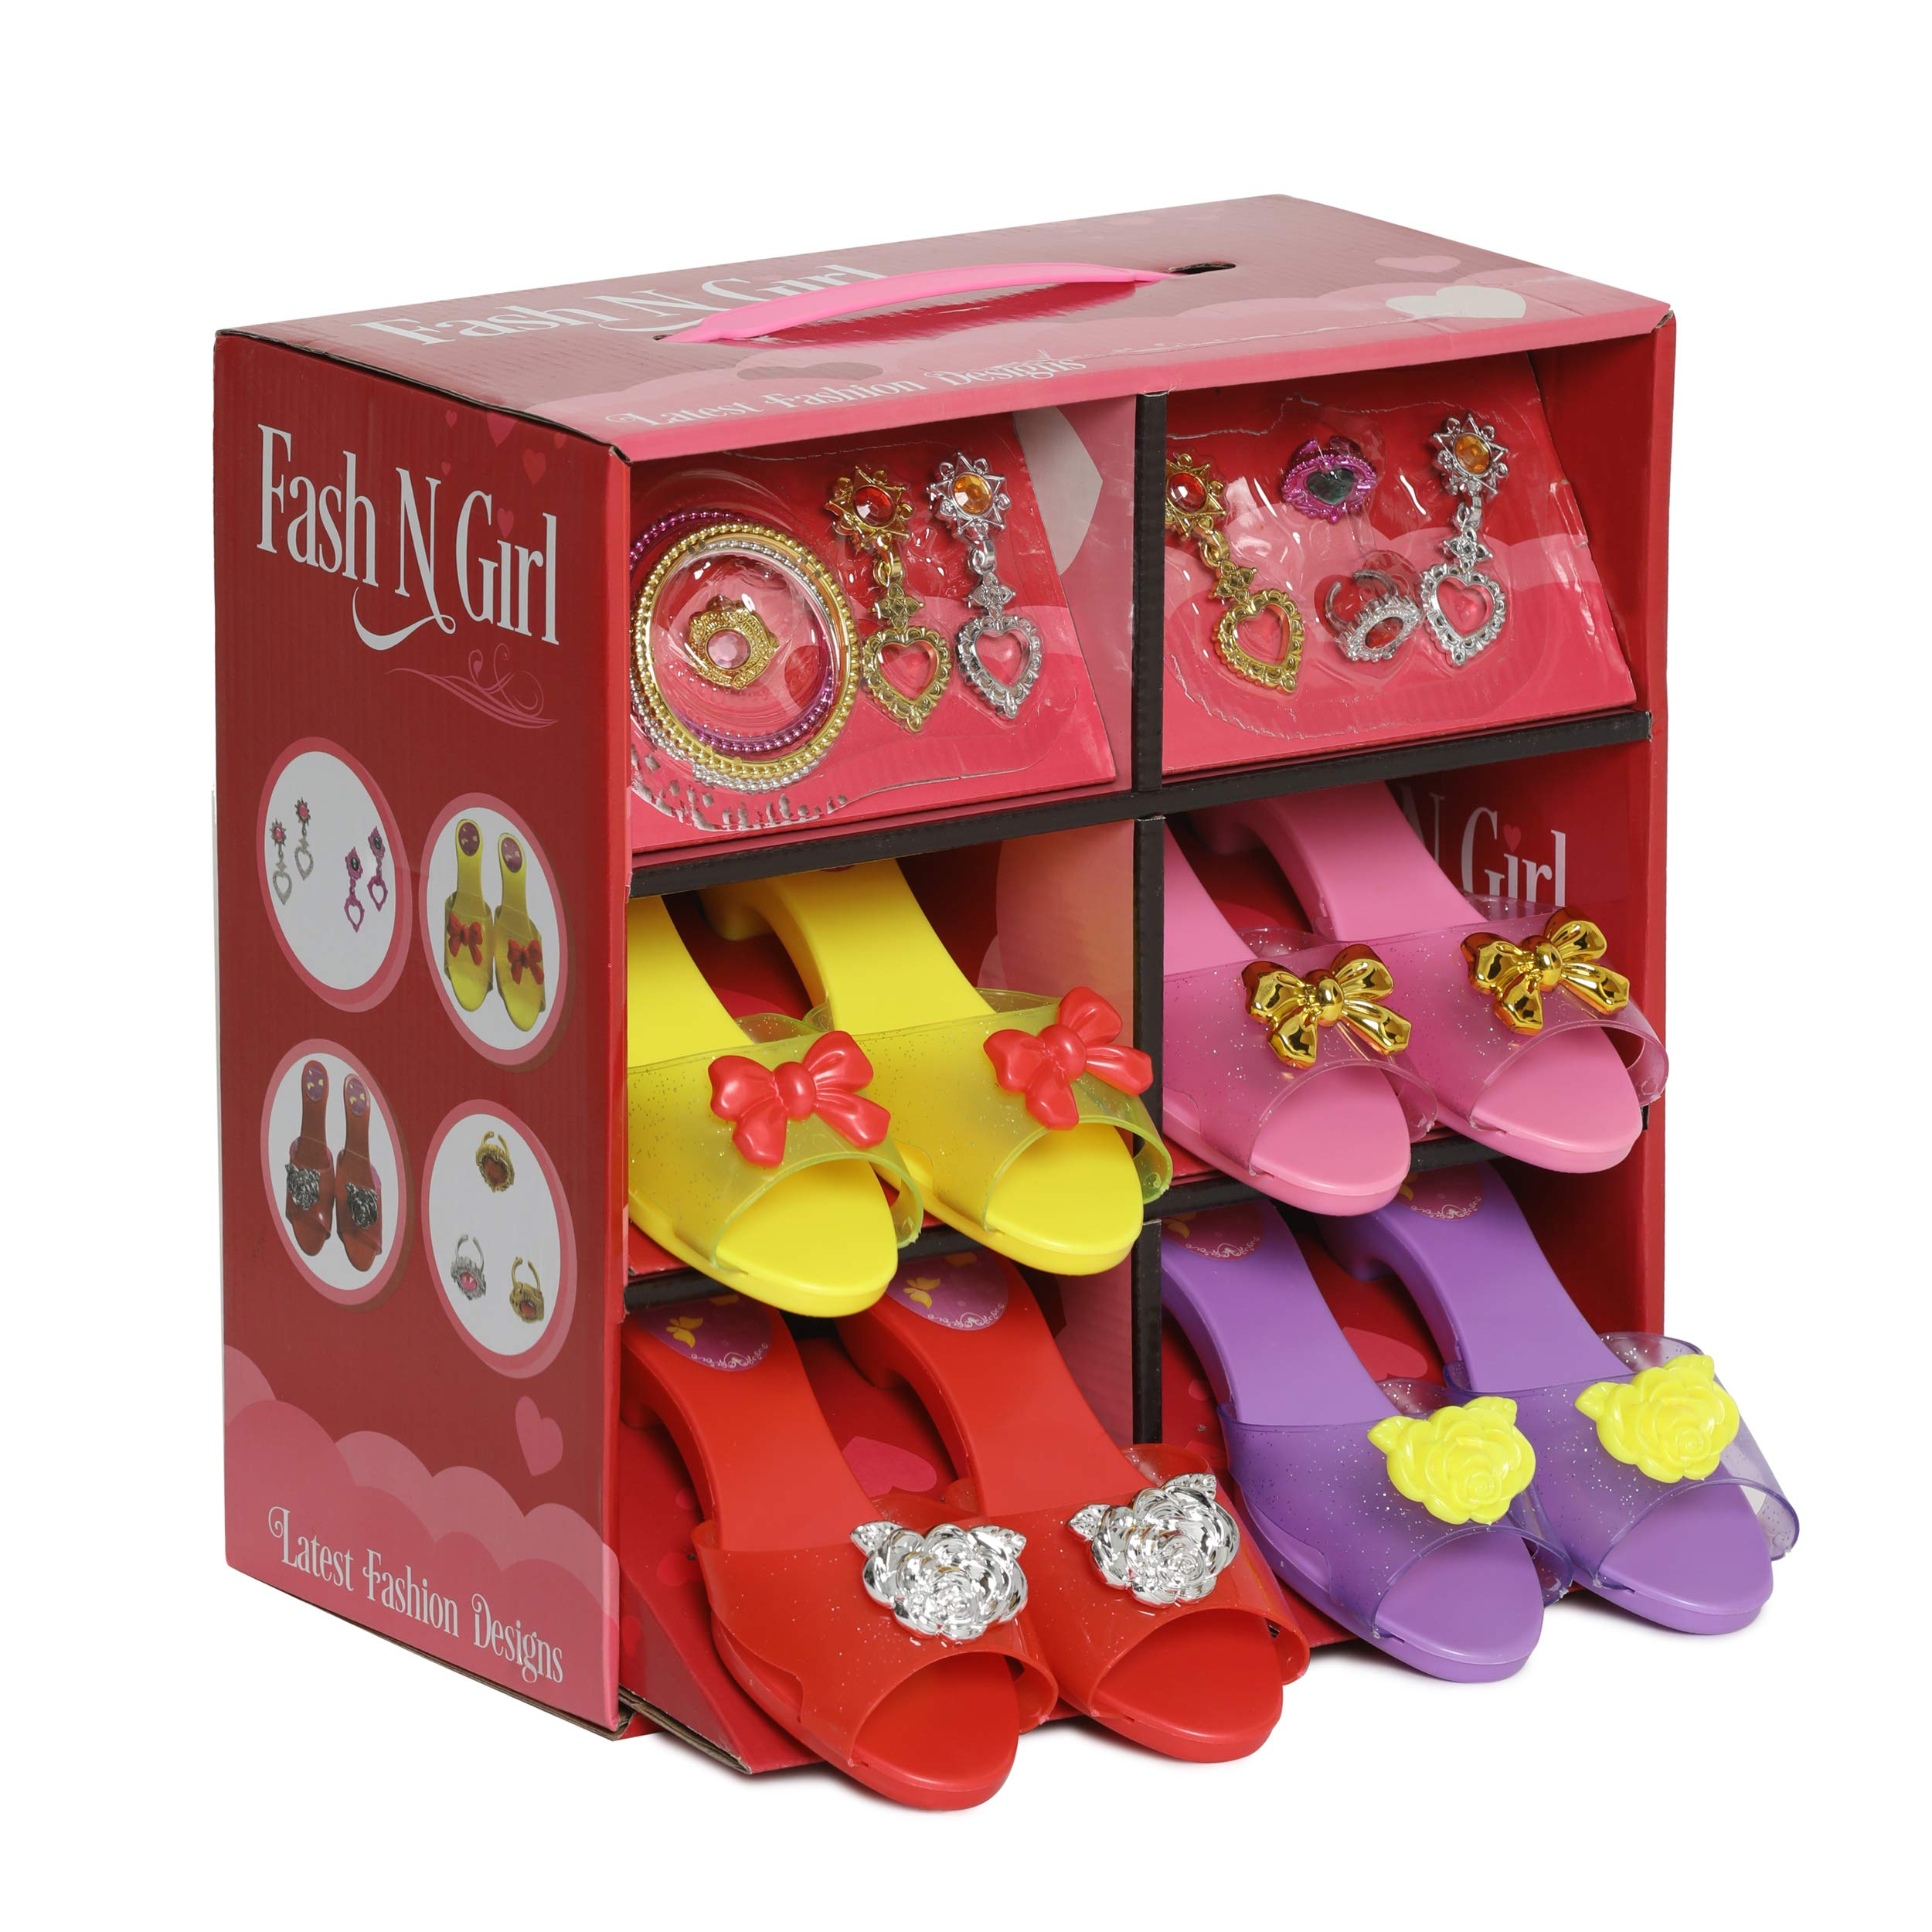 My Princess Dress Up & Play Shoe, Jewelry Boutique Set - 4 Pairs of Girls Shoes, 2 Pairs of Earrings, 3 Bracelets and Rings - Fashion Accessories for Girls Dress Up, Age 3 - 10 yrs Old